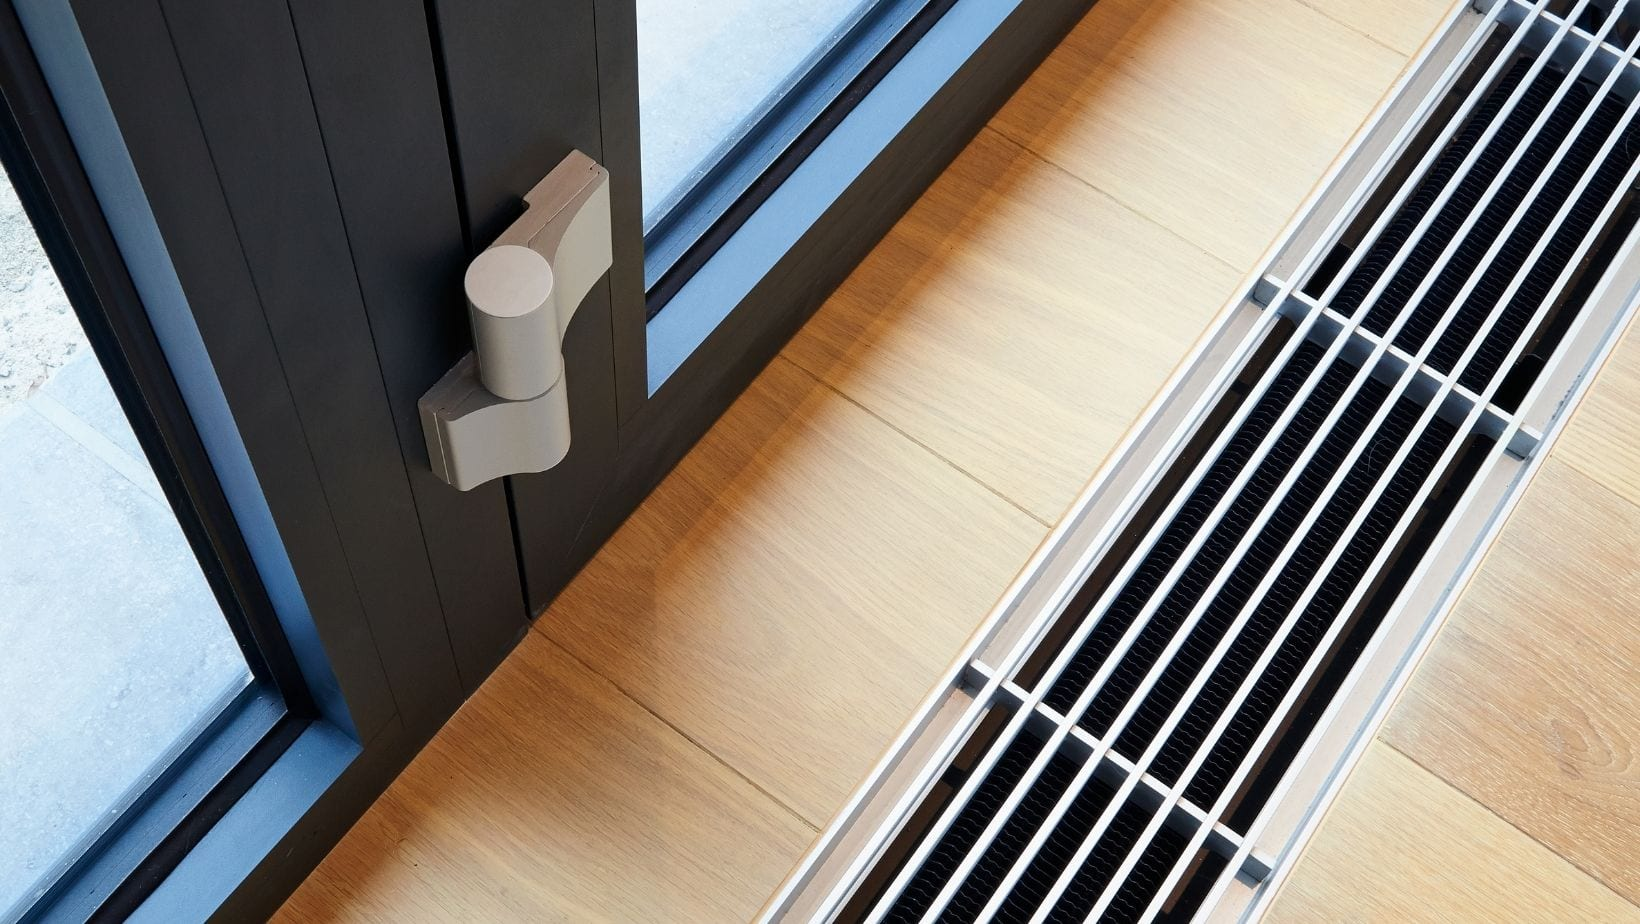 Ducted Vs High Wall Heat Pump: Which one is the right one for me?